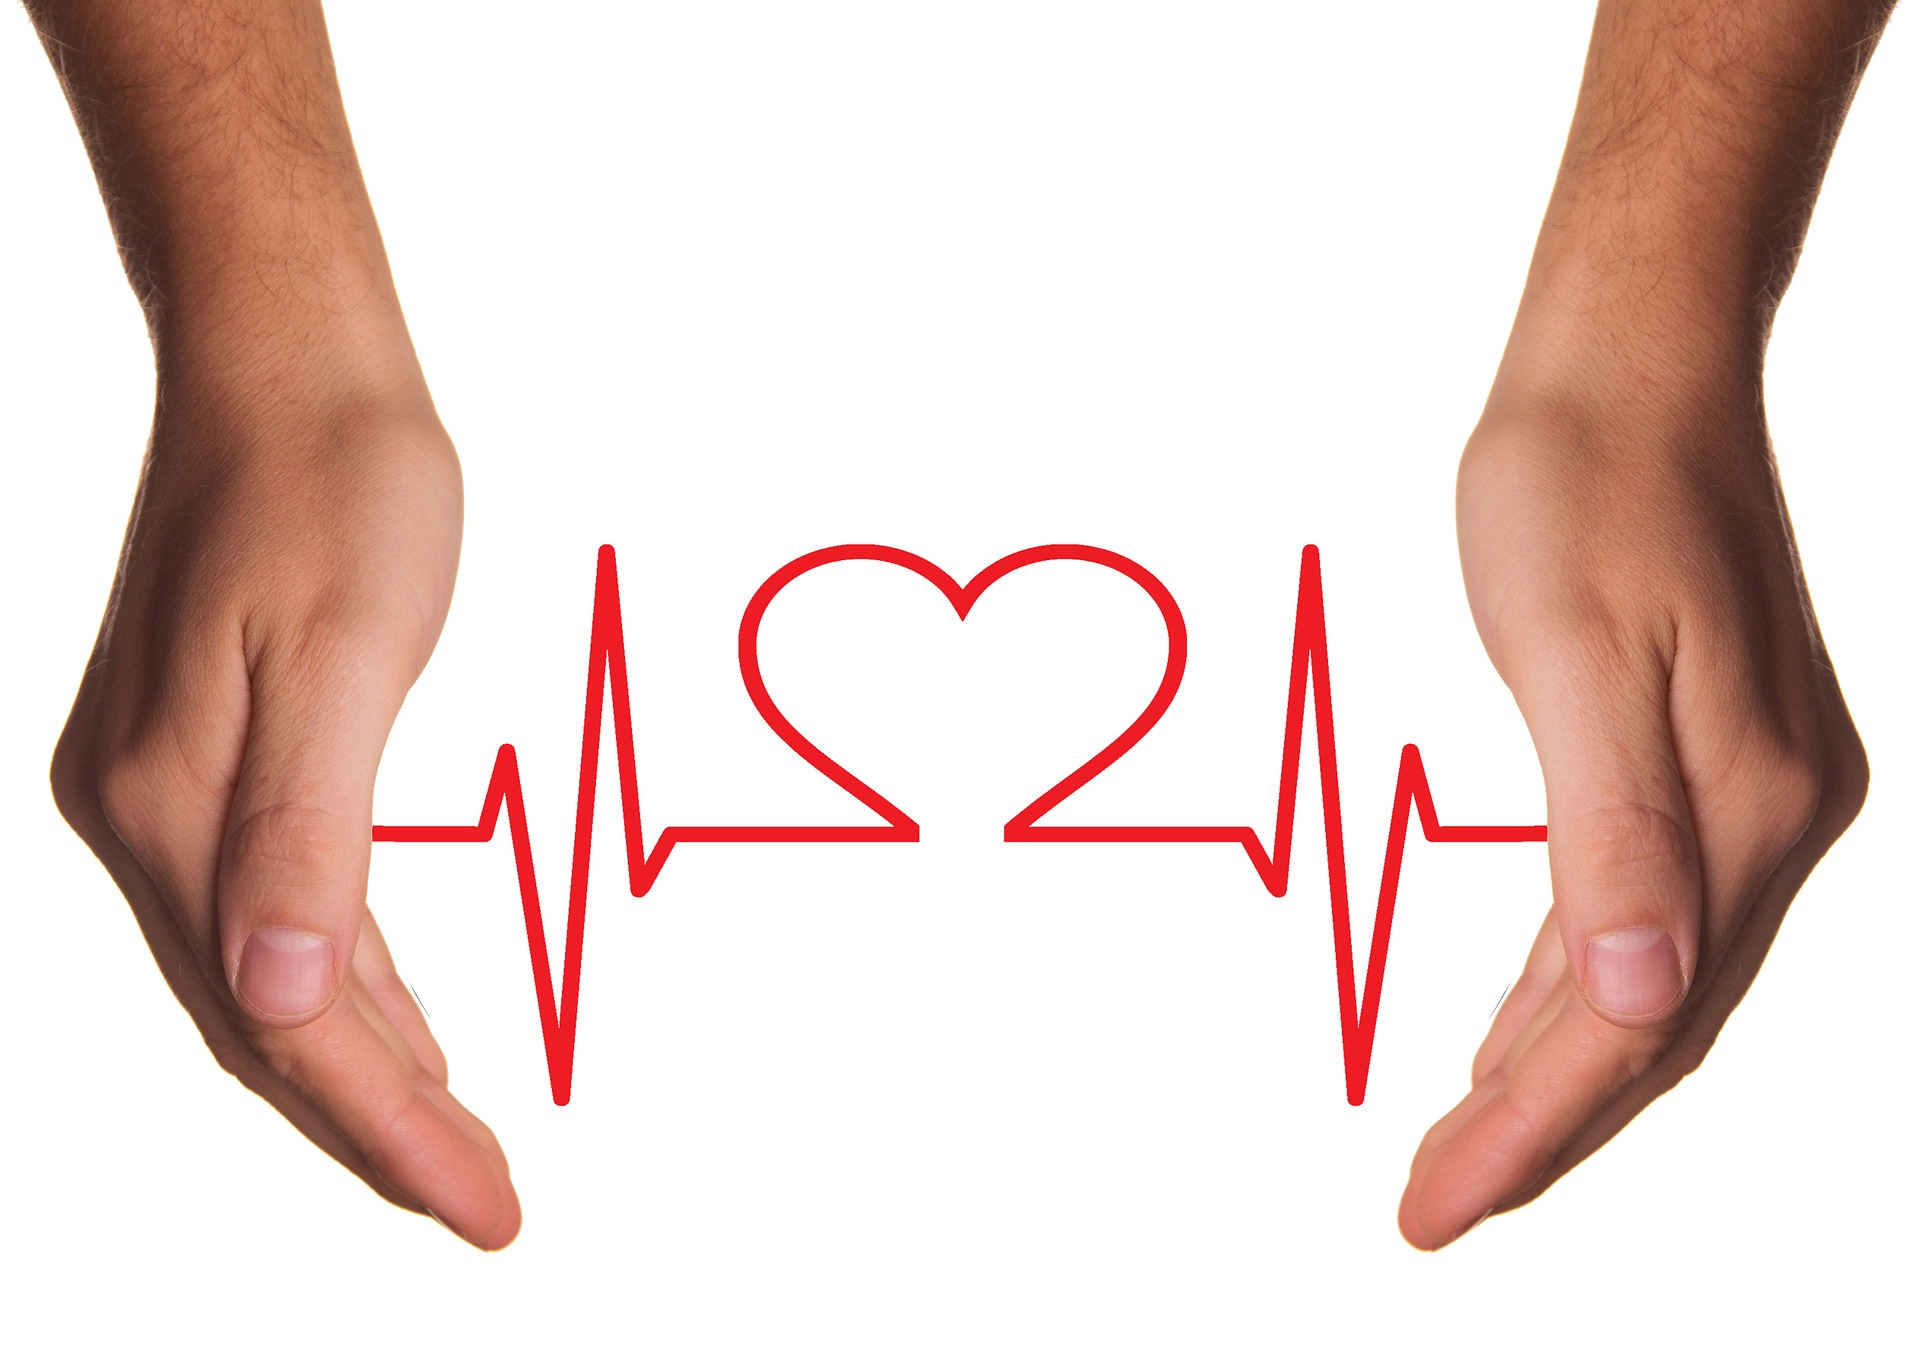 Conscious Capitalism and Love at the Casey Health Institute's Integrative PCMH